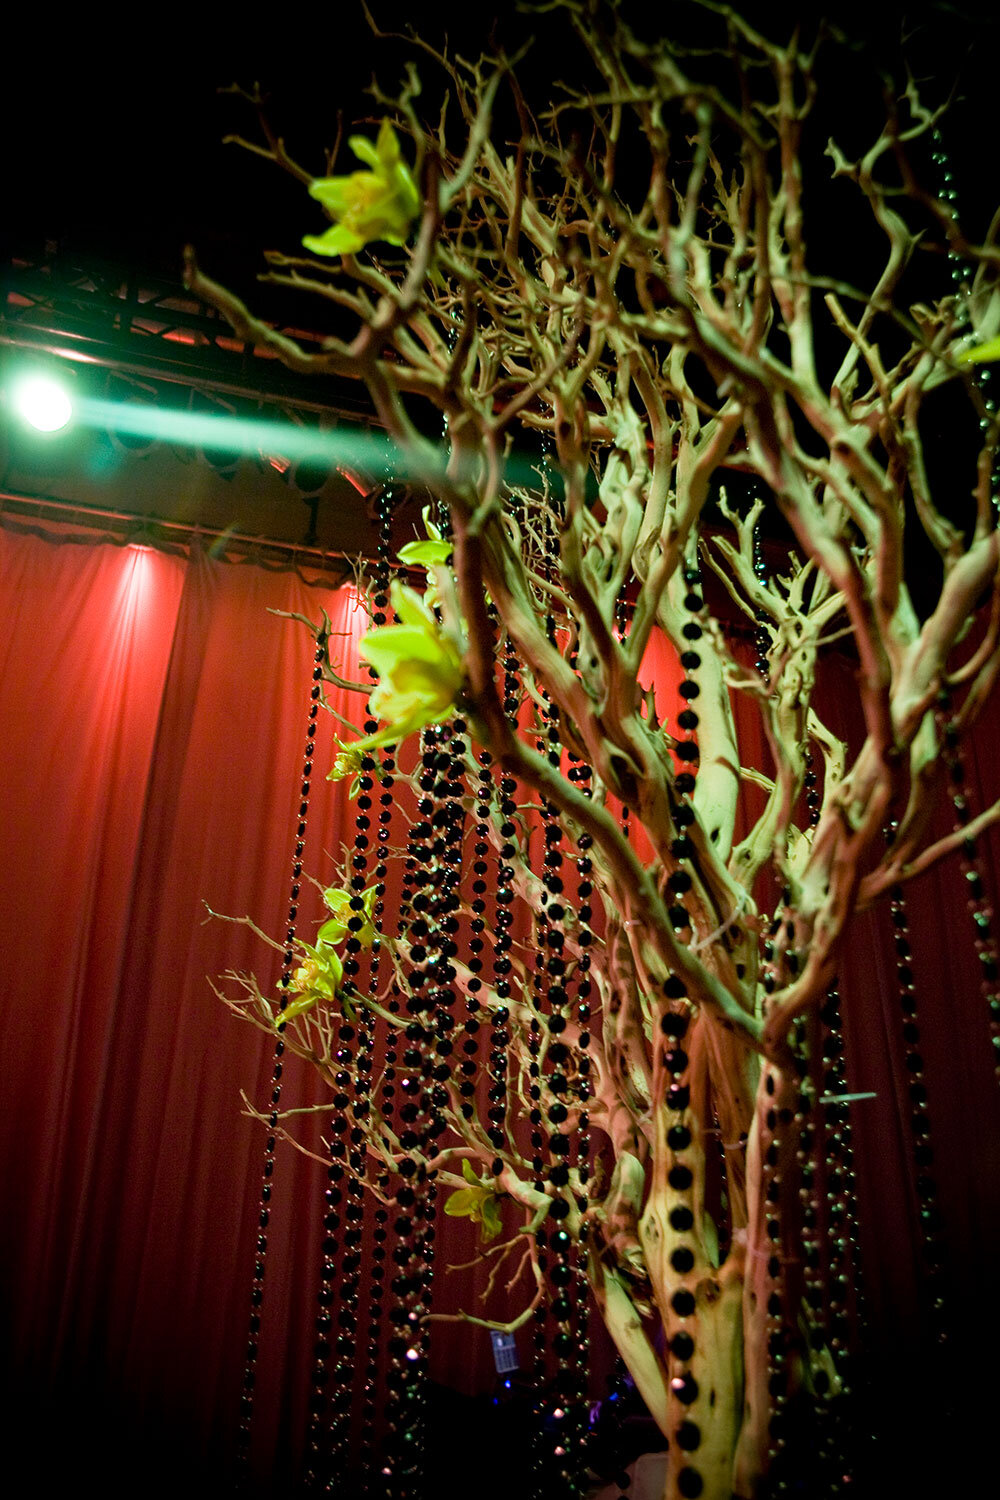 Paras-Events-Moss-Organic-Earthy-Branches-Wedding-Reception-Liberty-Grand-3.jpg